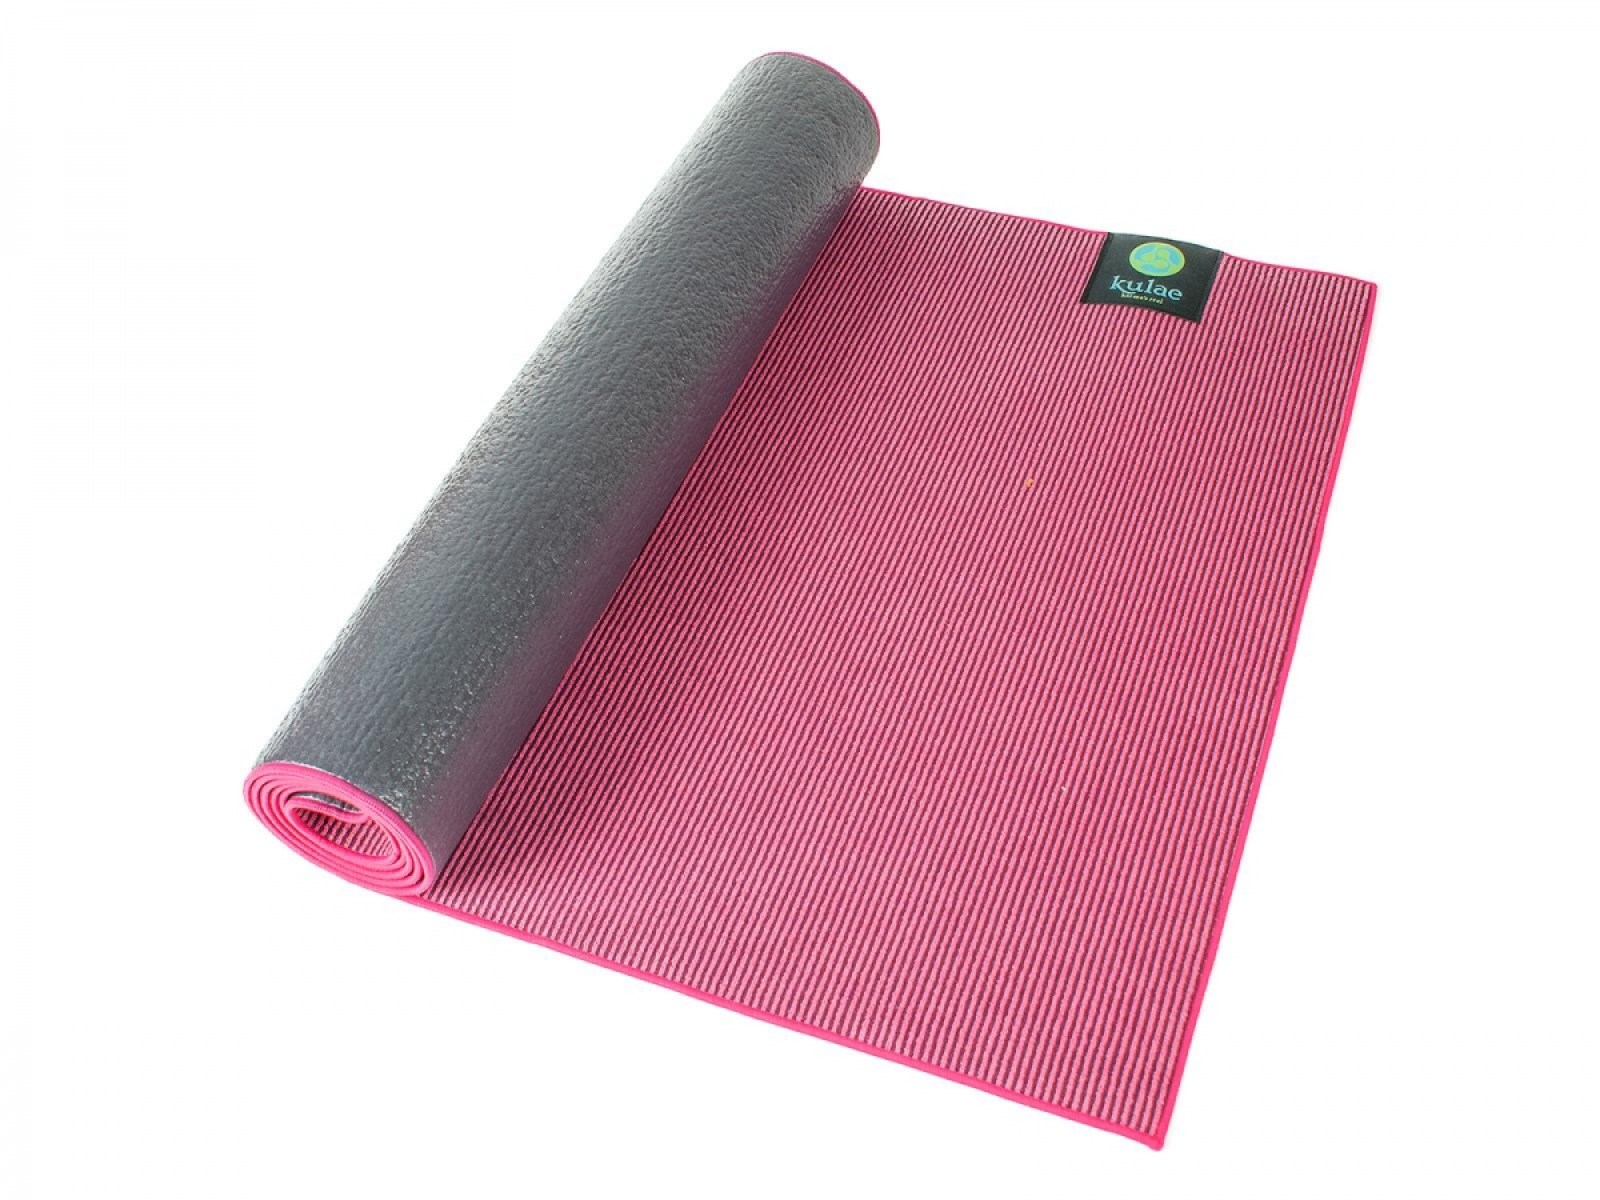 kulae elita hot hybrid yoga mat